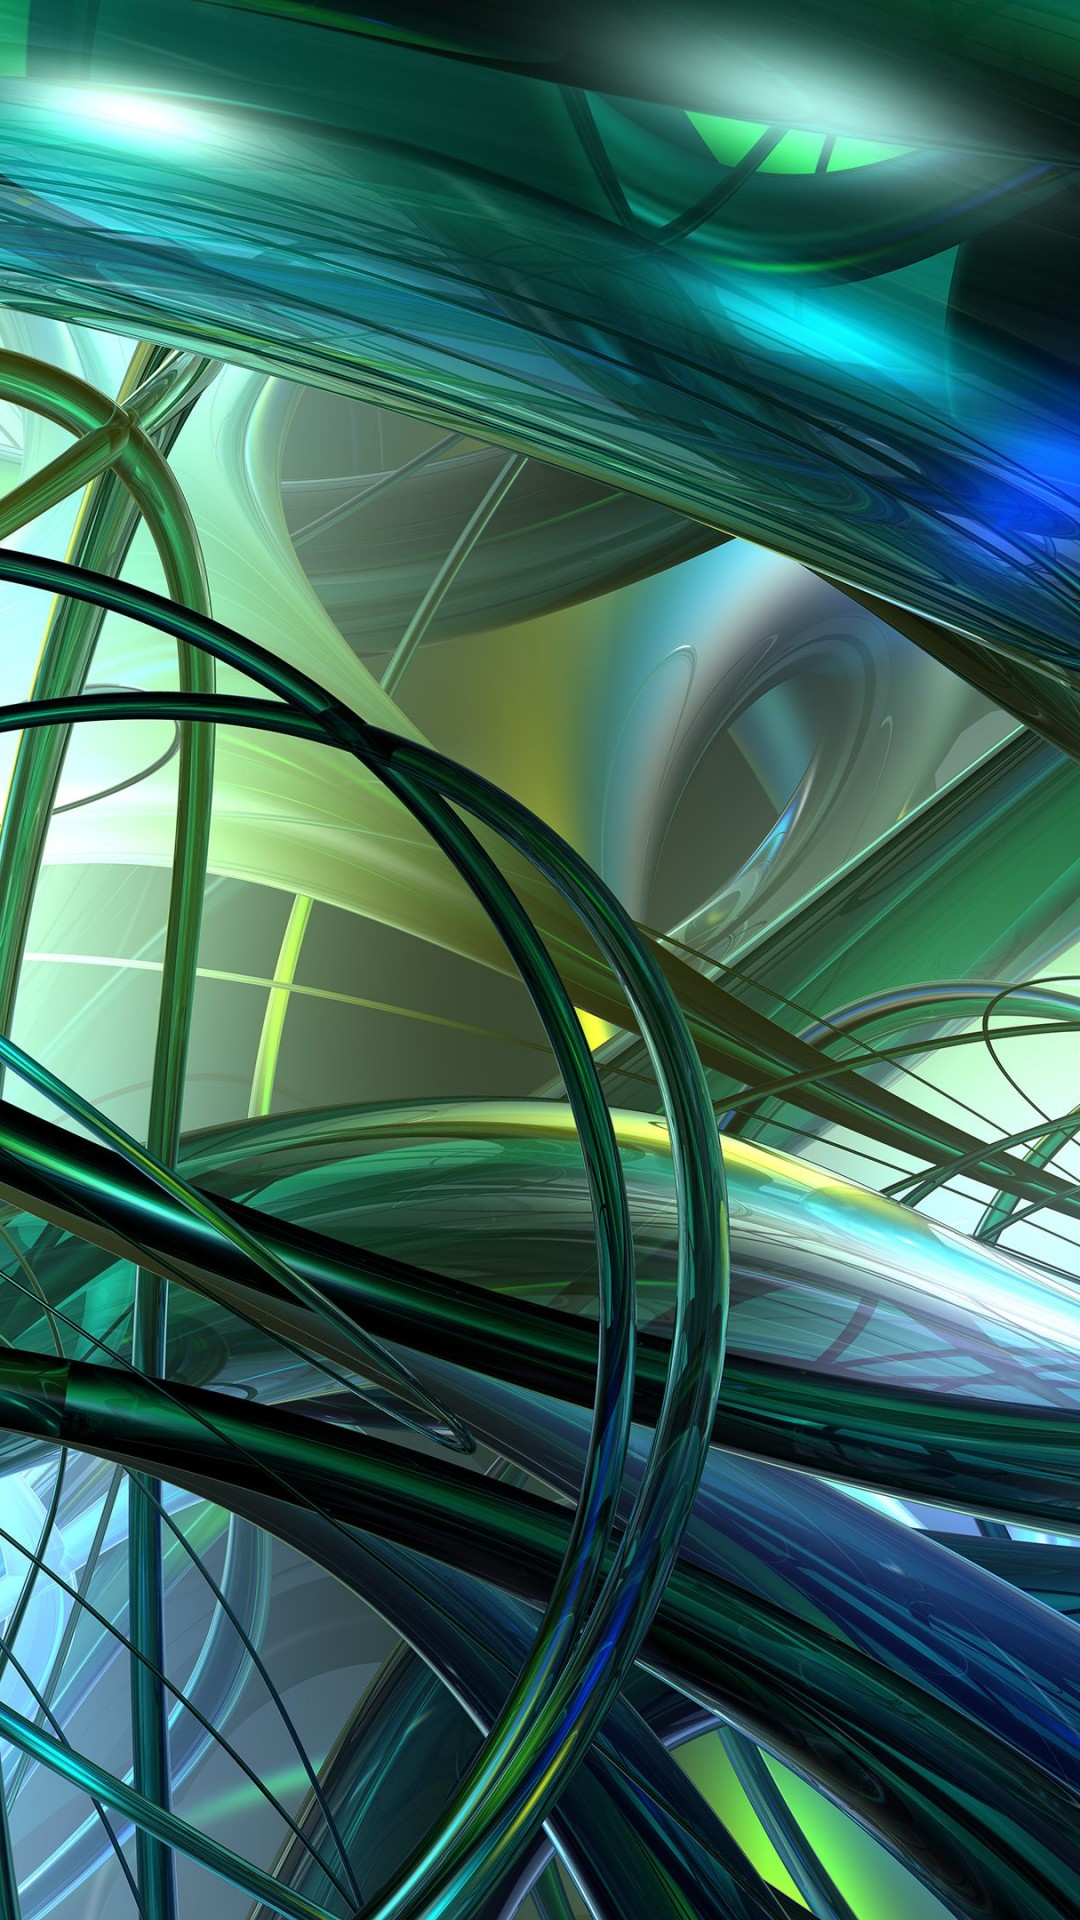 Translucide Pipes Wallpaper for SAMSUNG Galaxy S5